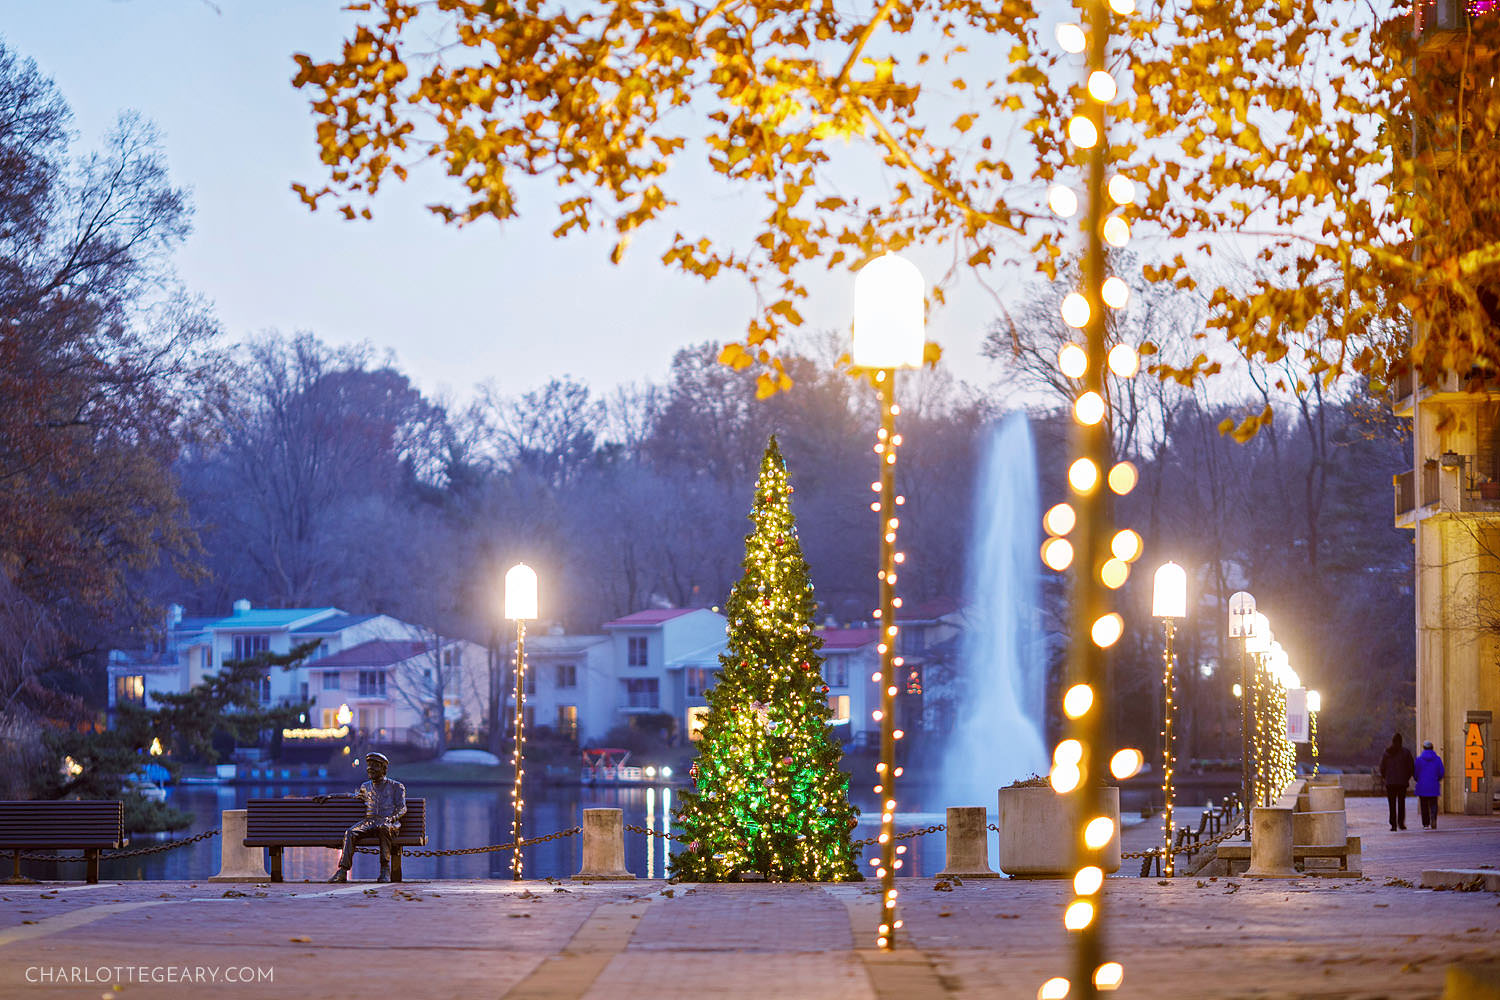 Lake Anne Plaza during the holidays